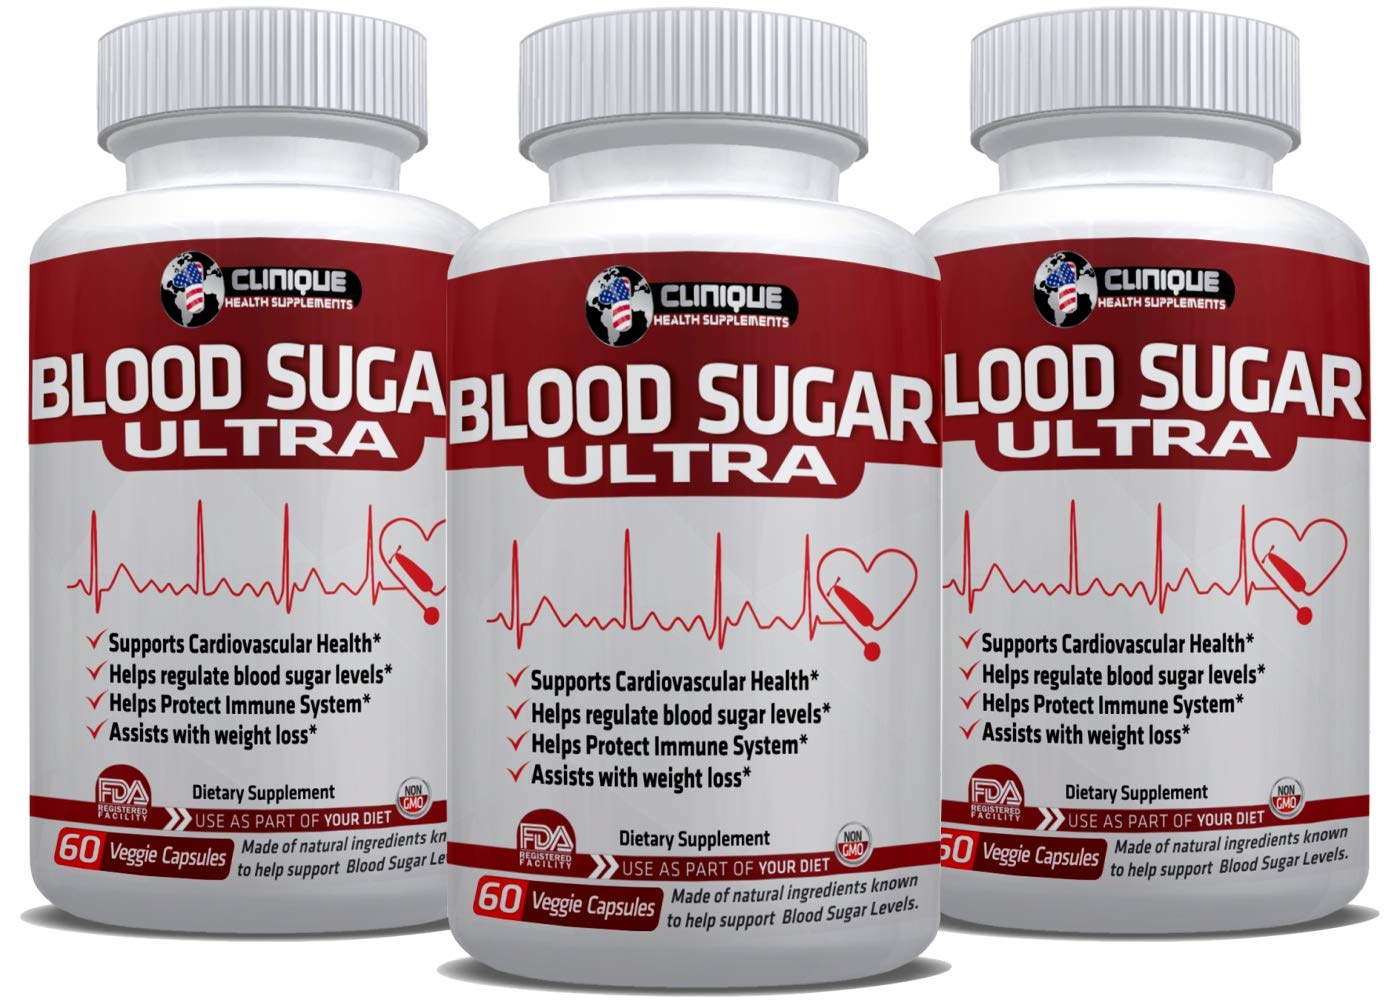 1Clinique's Blood Sugar Ultra | Value Pack 3 x 60 Capsules | Regulates Blood Sugar Levels | Cardiovascular Health | Healthy Immune System & Pancreas Function | Made in USA